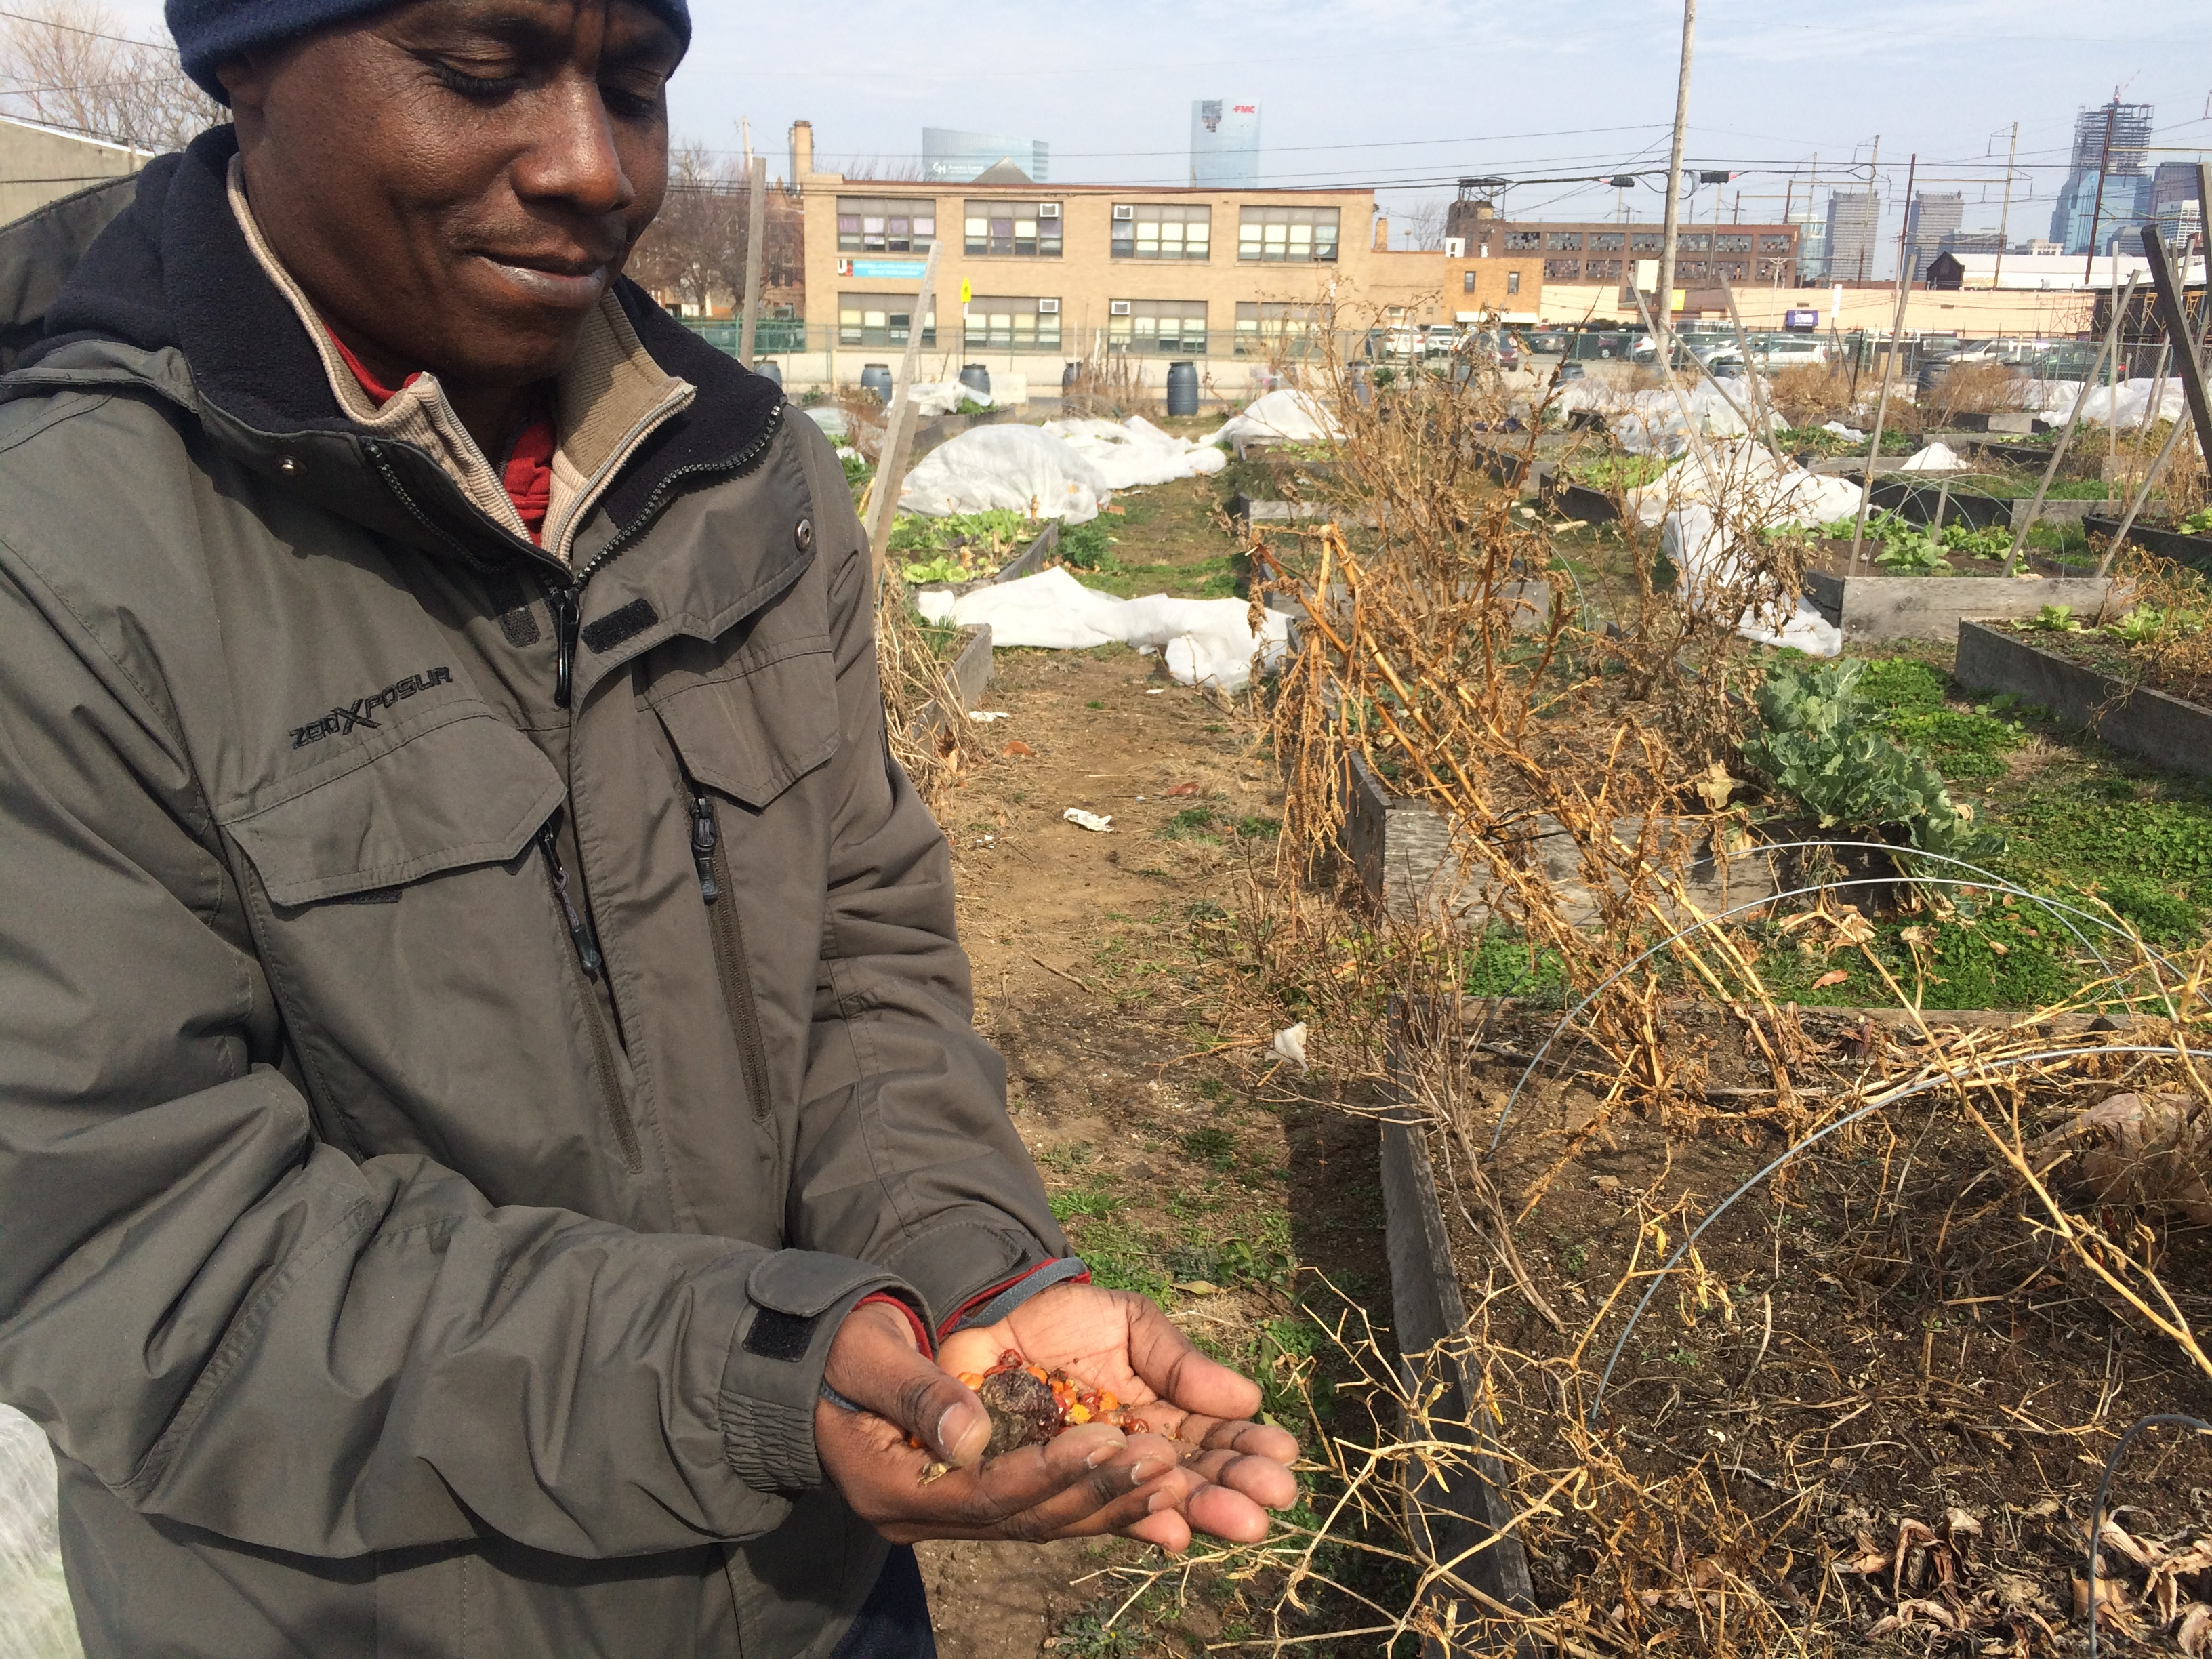 Merthus Mbonigaba at the Growing Together farm in South Philadelphia. | Catalina Jaramillo / WHYY